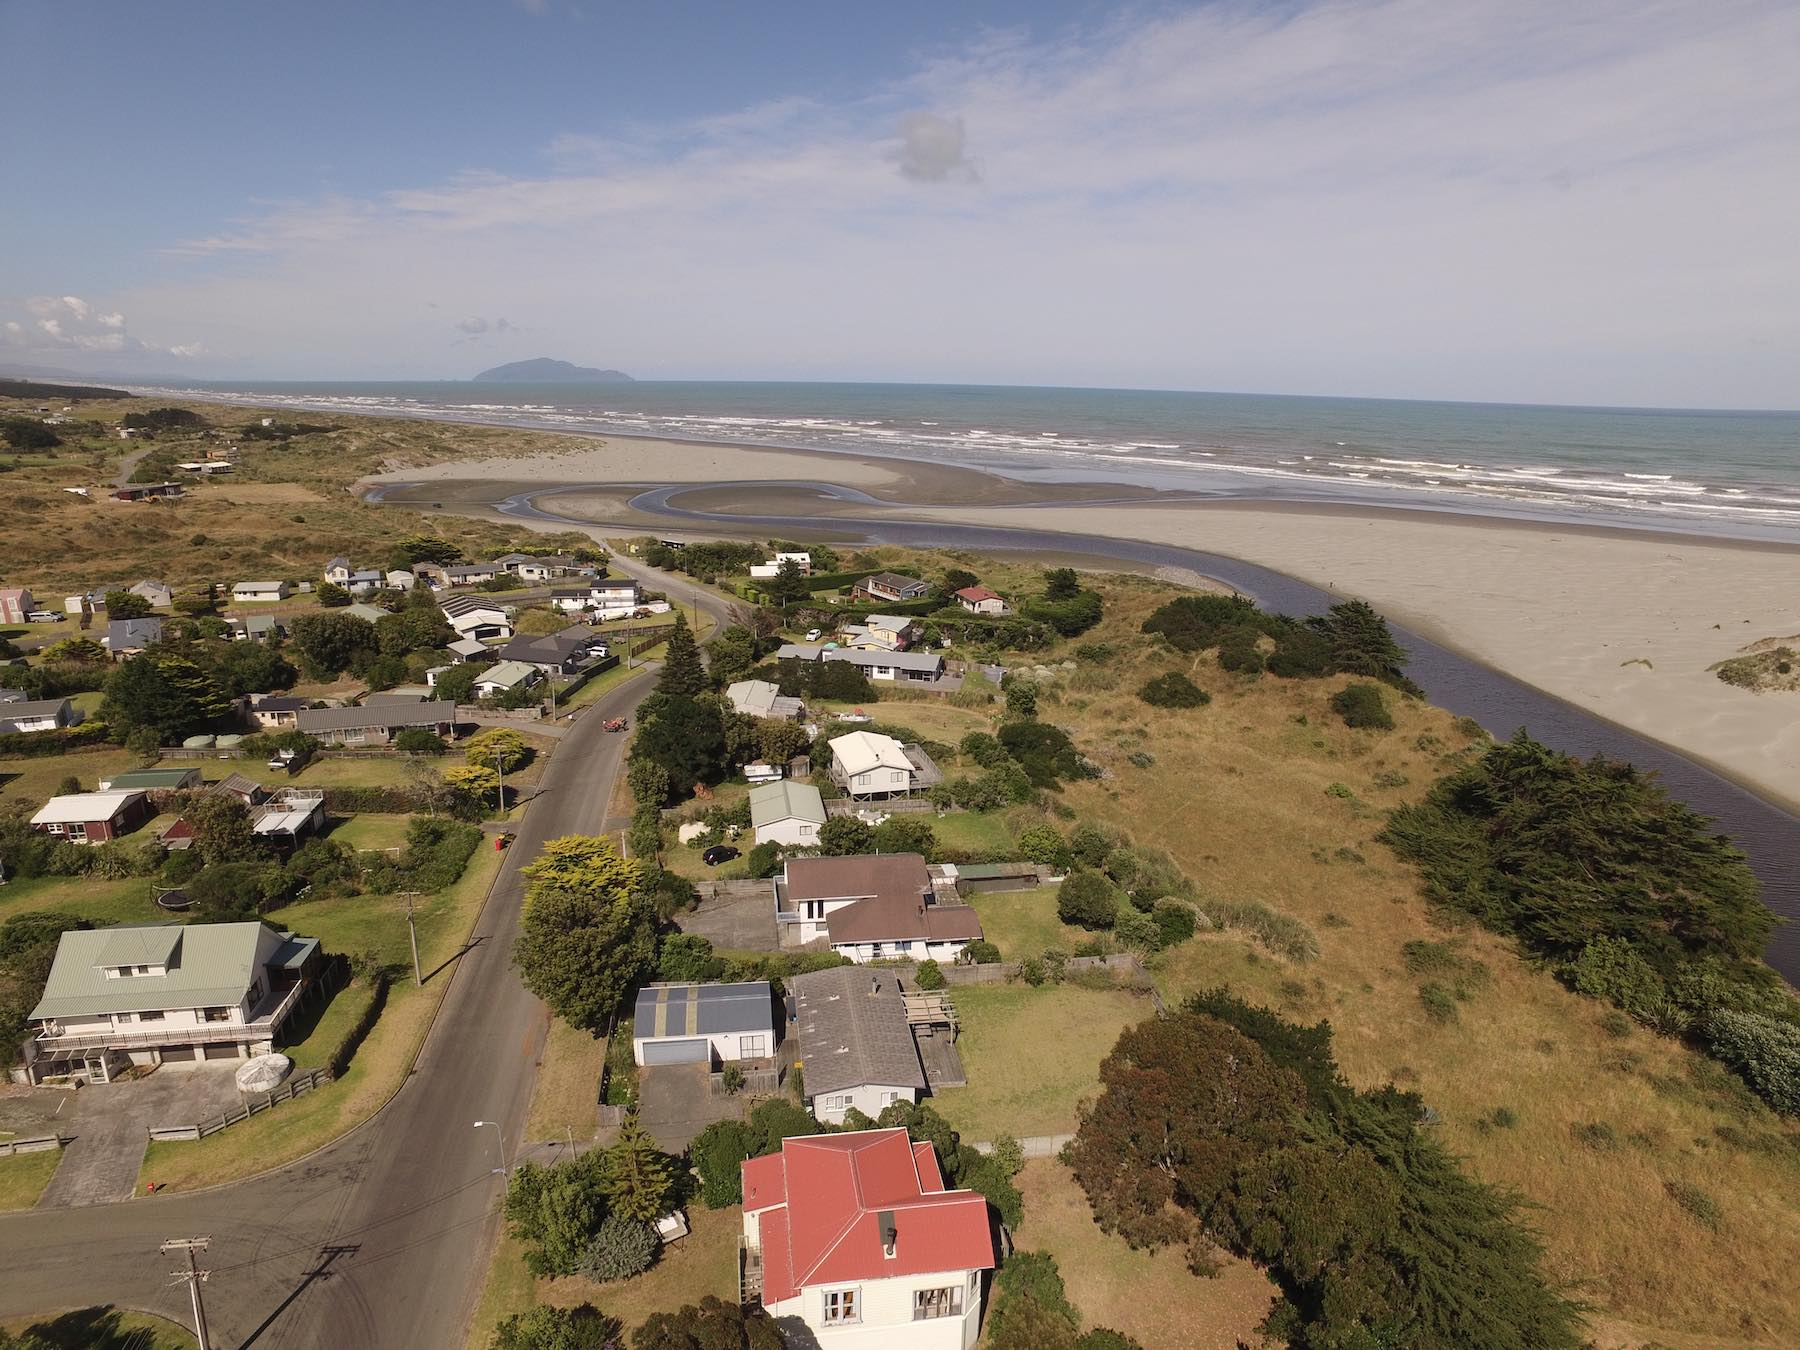 Drone Photo 01: Manga Pirau Street and river mouth.